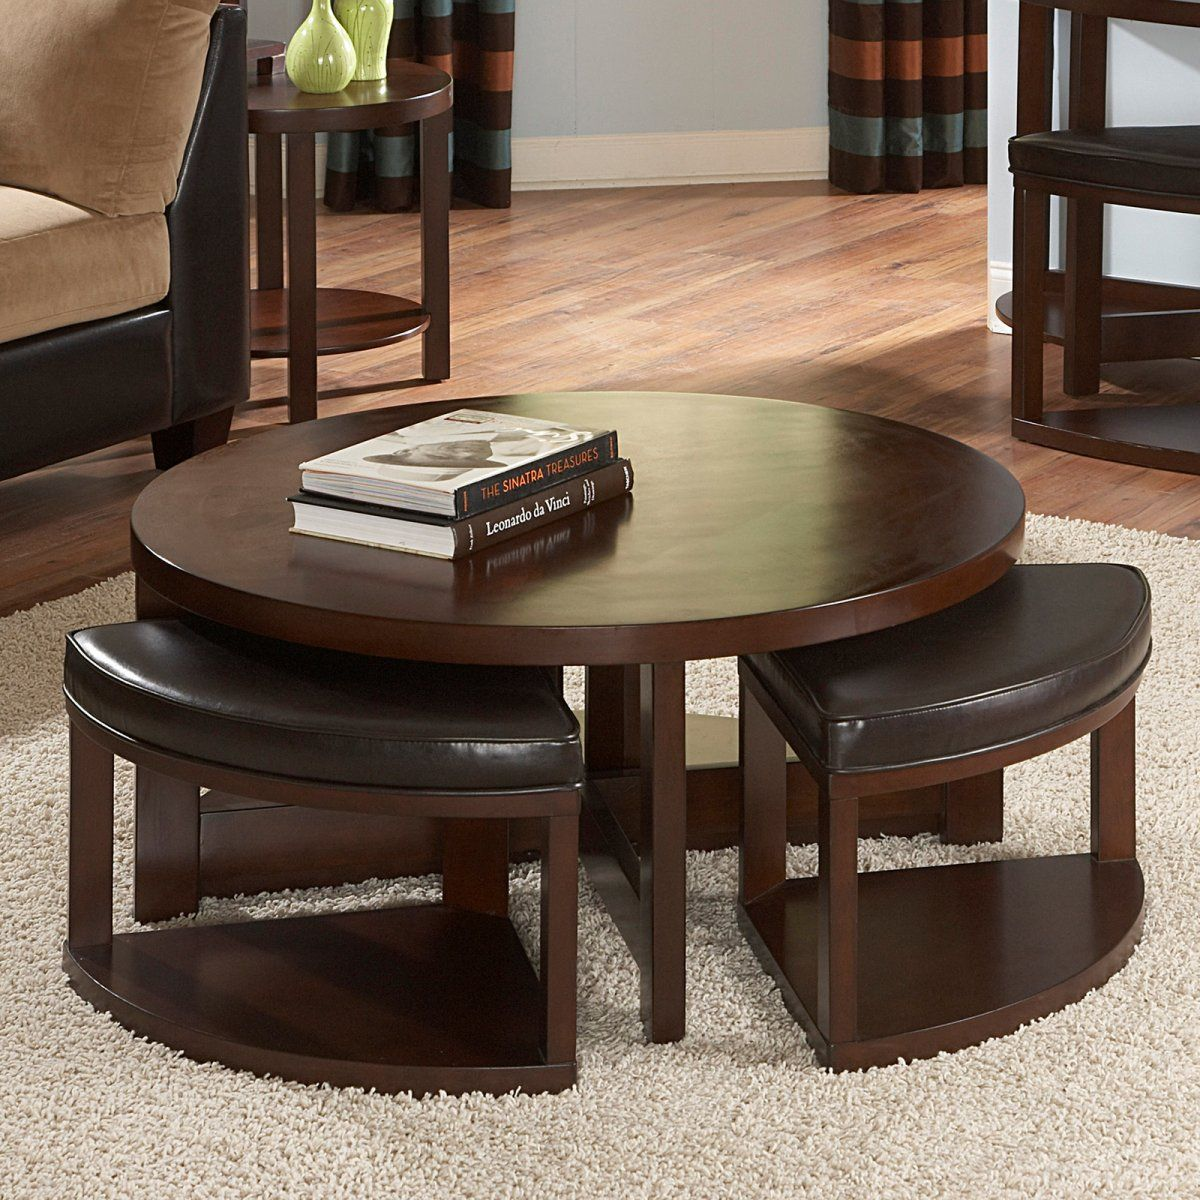 Homelegance brussel ii round brown cherry wood coffee table with